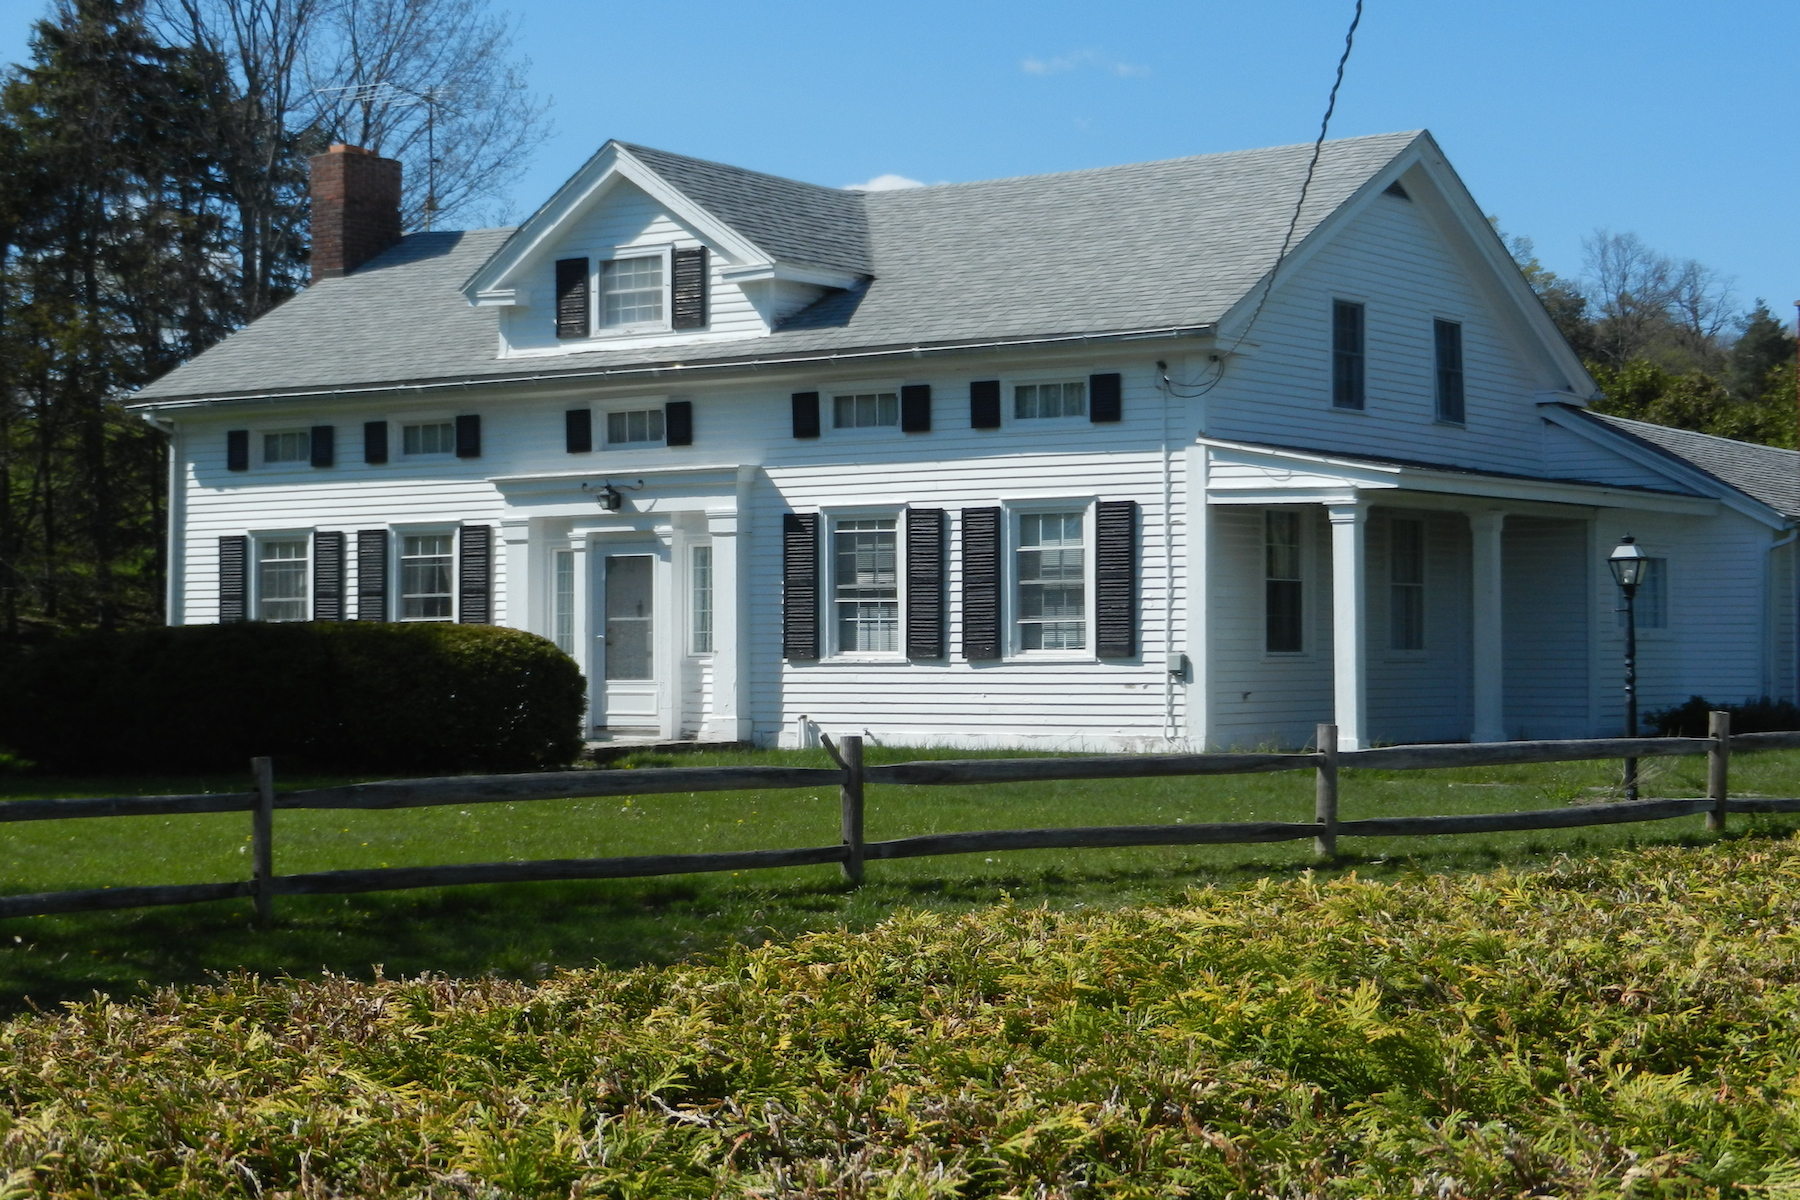 Single Family Home for Sale at Wee Manor 205 Hanley Rd Chatham, New York 12123 United States